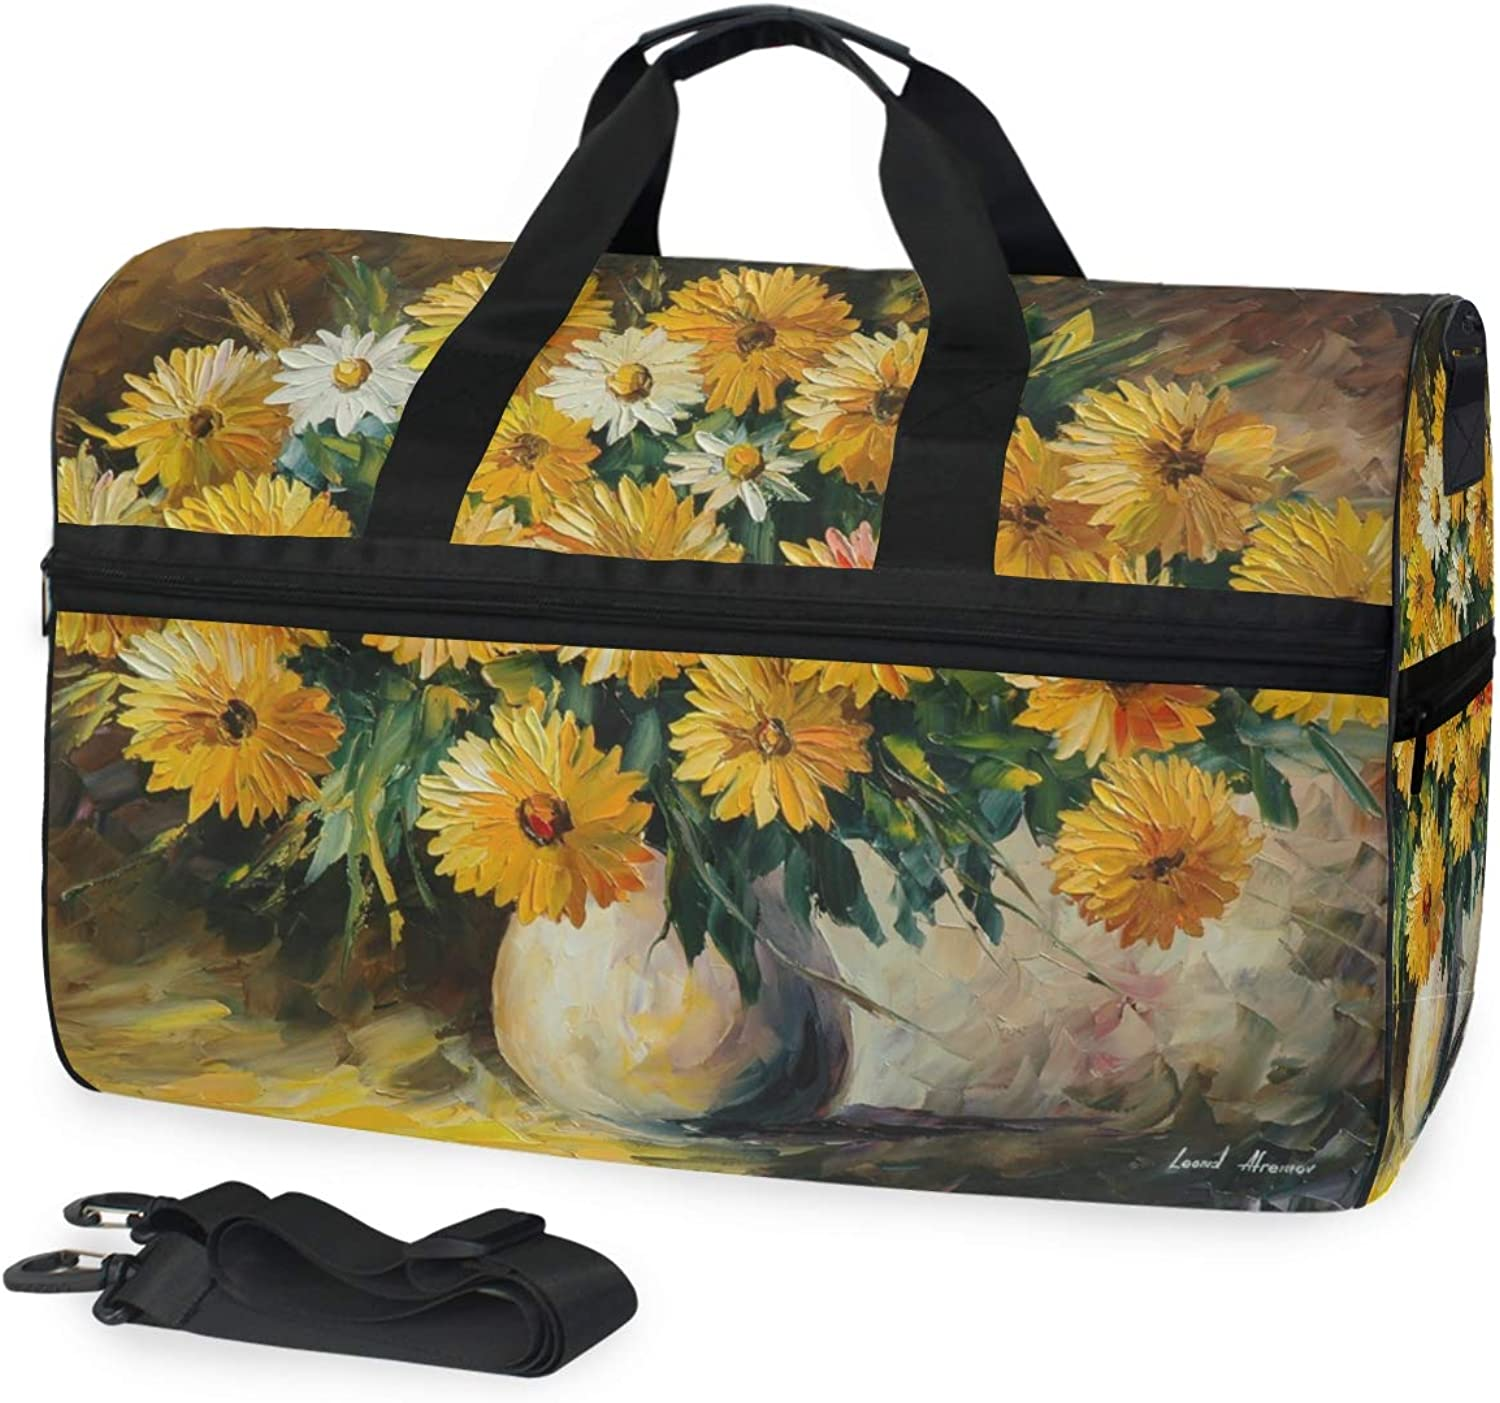 DEZIRO 45L Travel Duffel Bag Oil Painting Daisy Pattern Large Weekender Bag with shoes Compartment